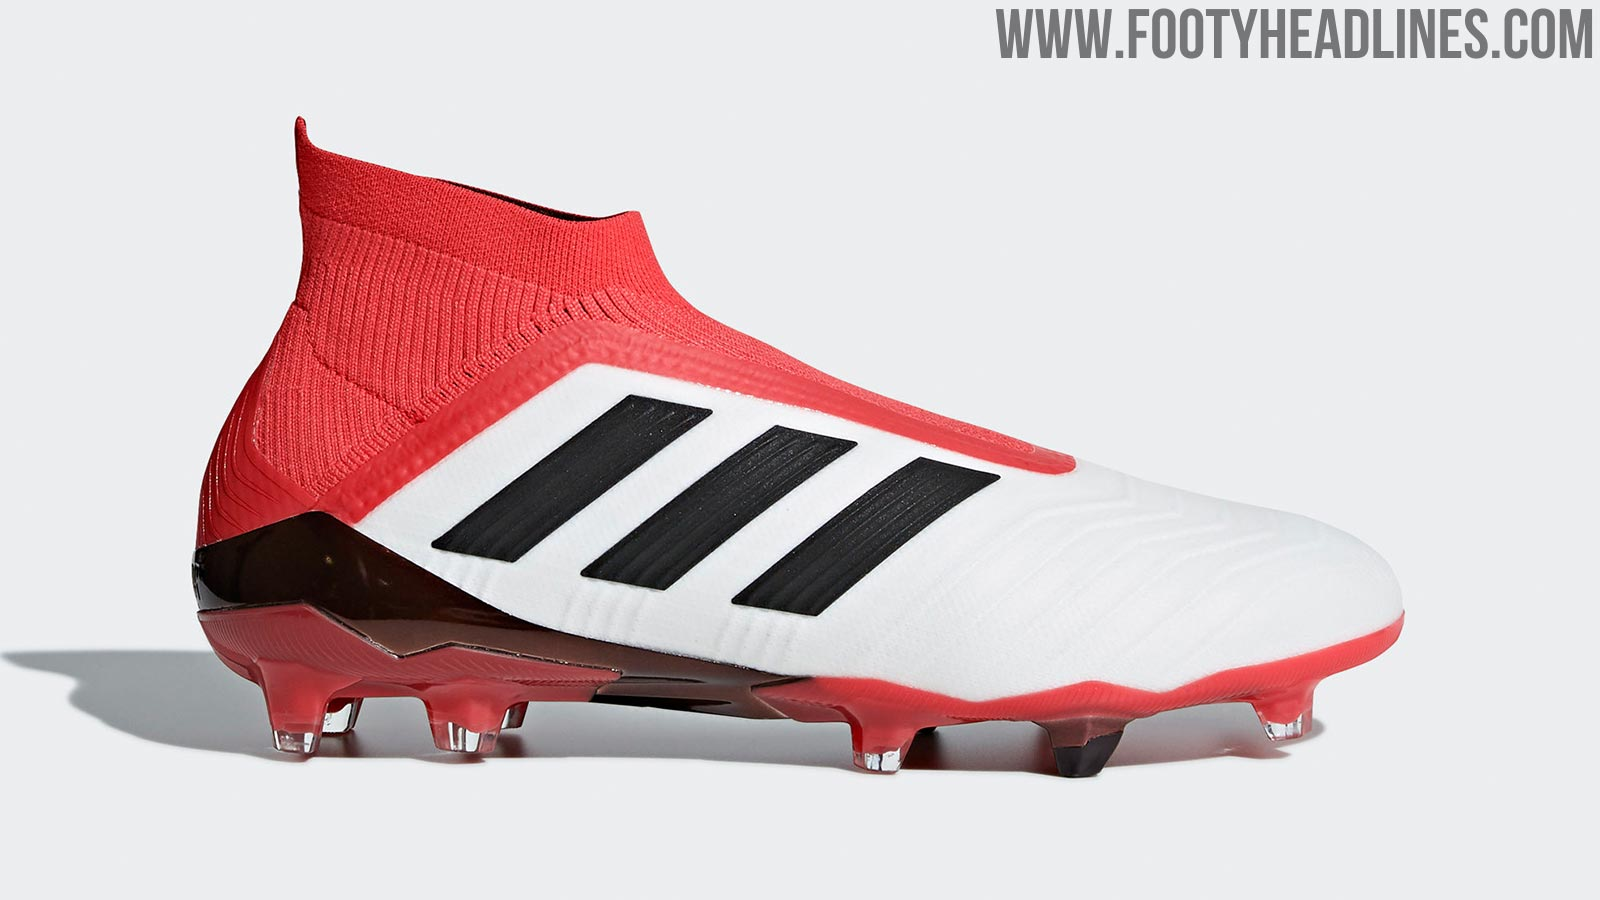 u0026 39 cold blooded u0026 39  adidas predator 18  boots released